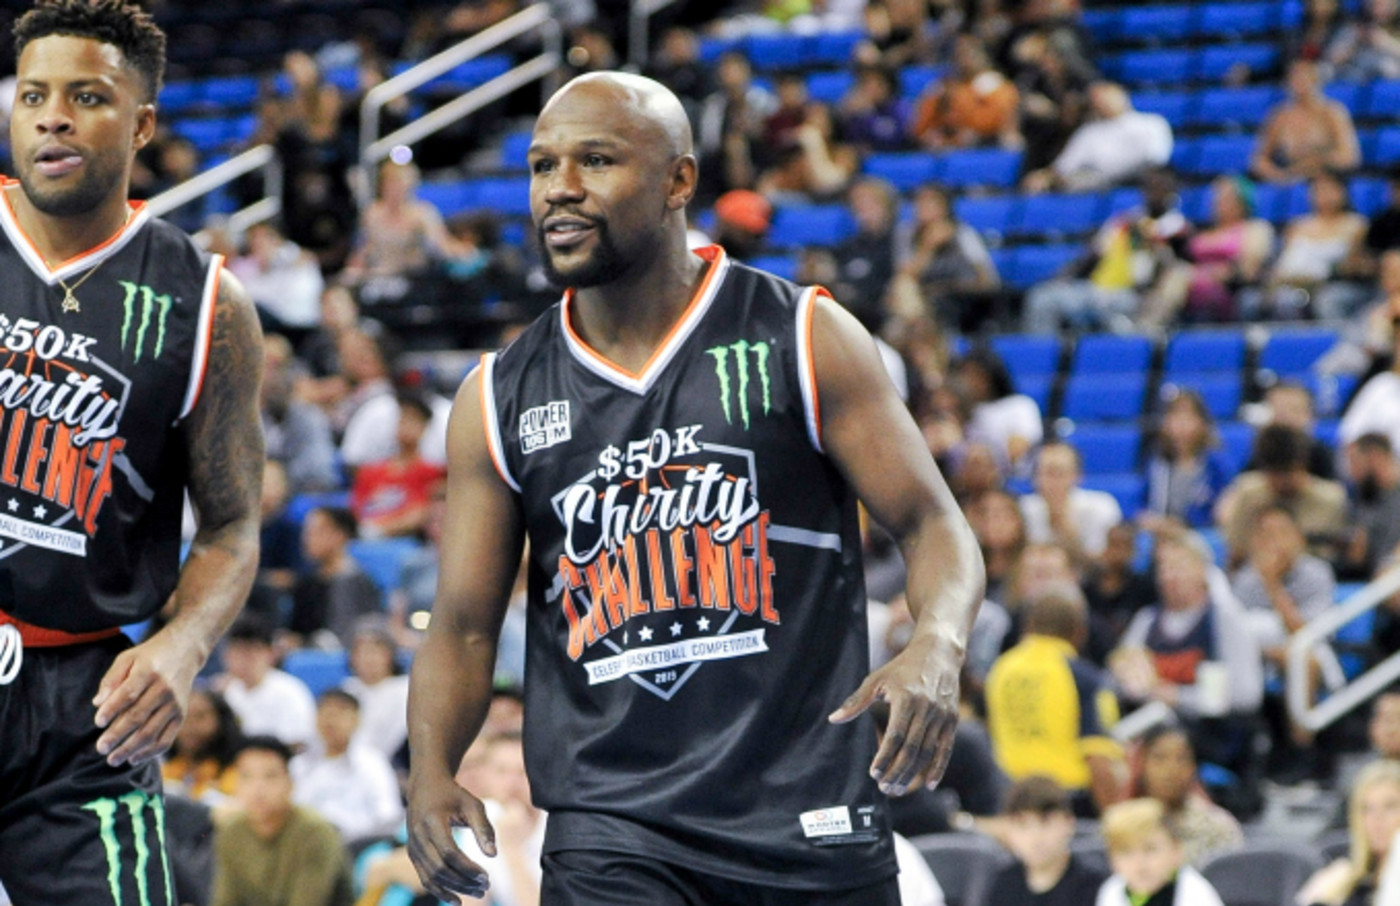 Floyd Mayweather Jr. participates in the Monster Energy $50K Charity Challenge